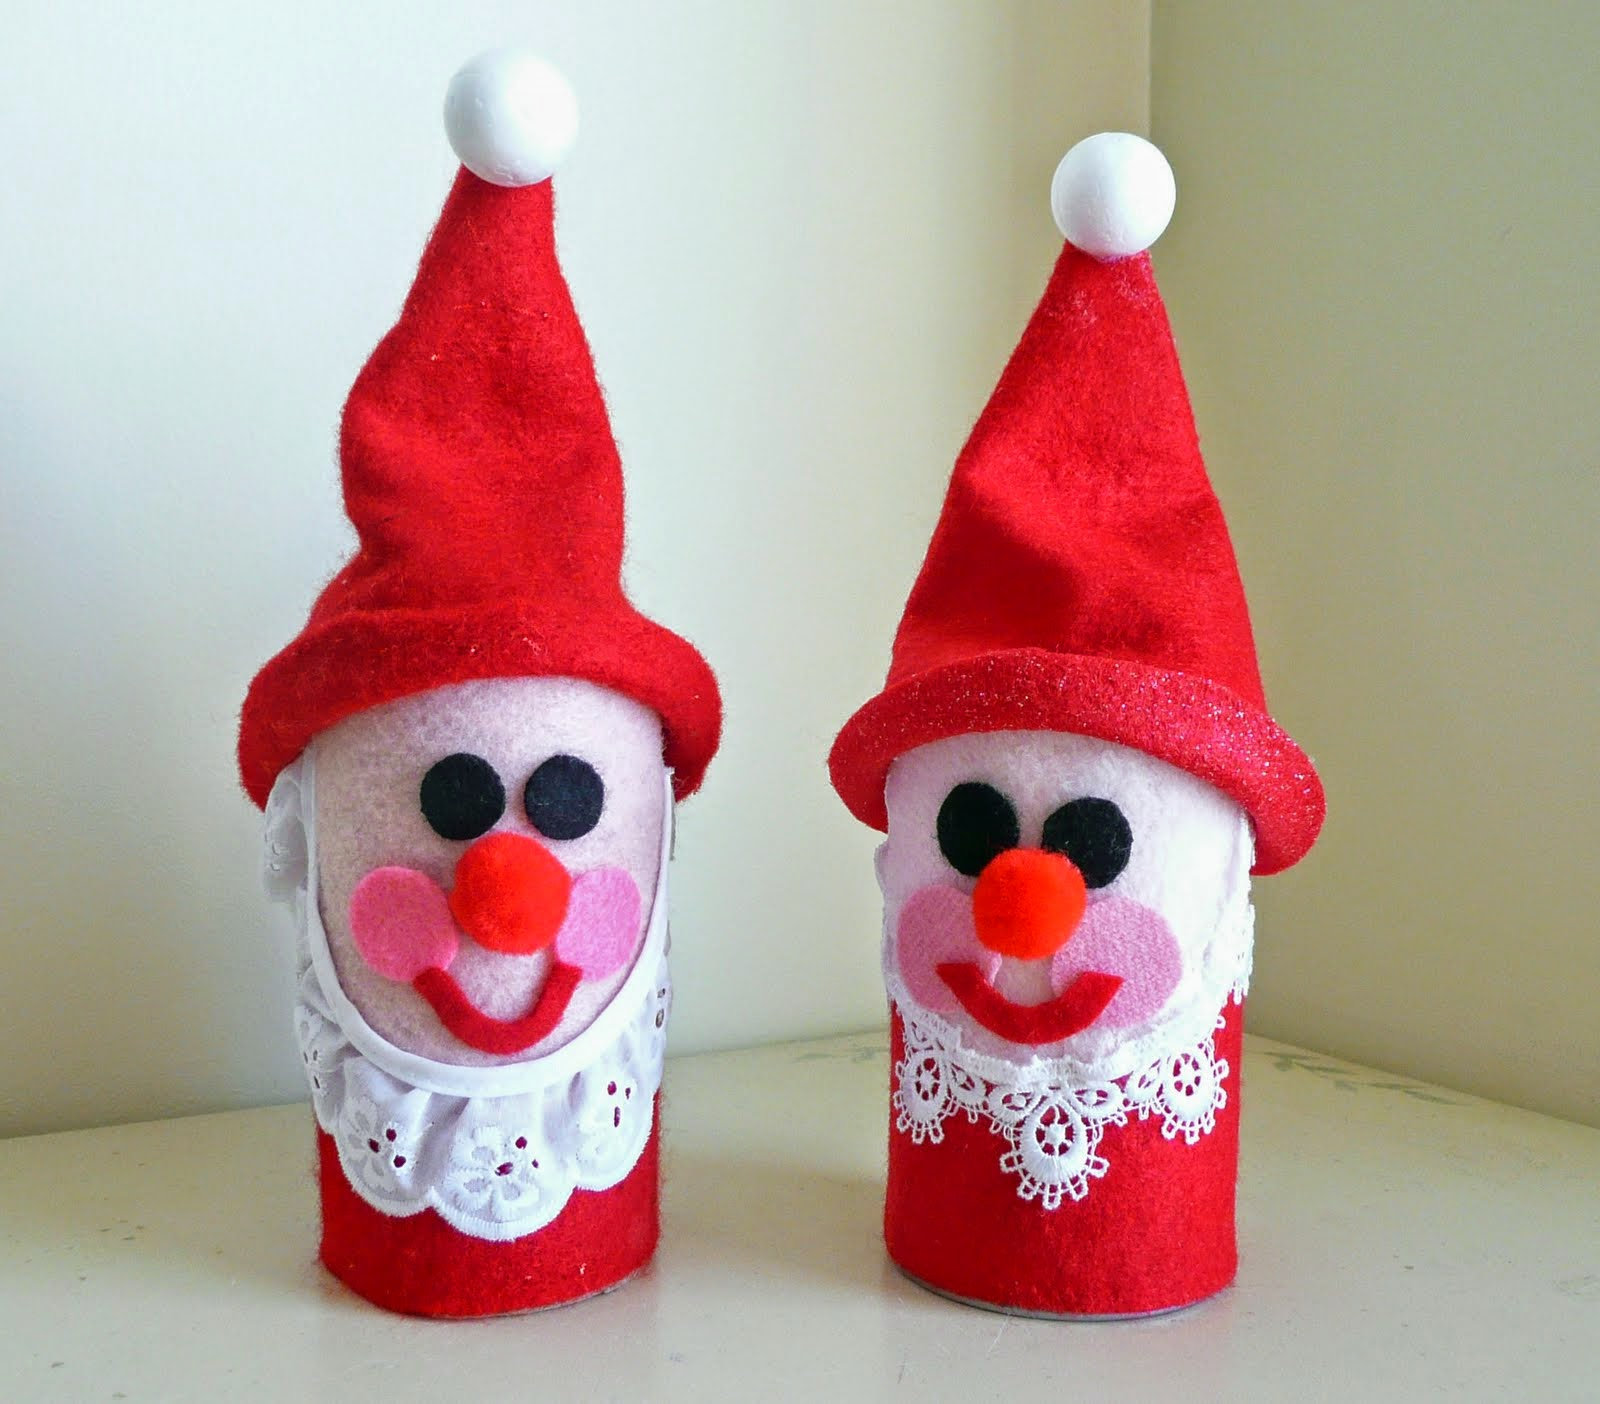 Kids Crafts For Christmas Christmas Craft From Toilet Paper Rolls Creative Art And Craft Ideas